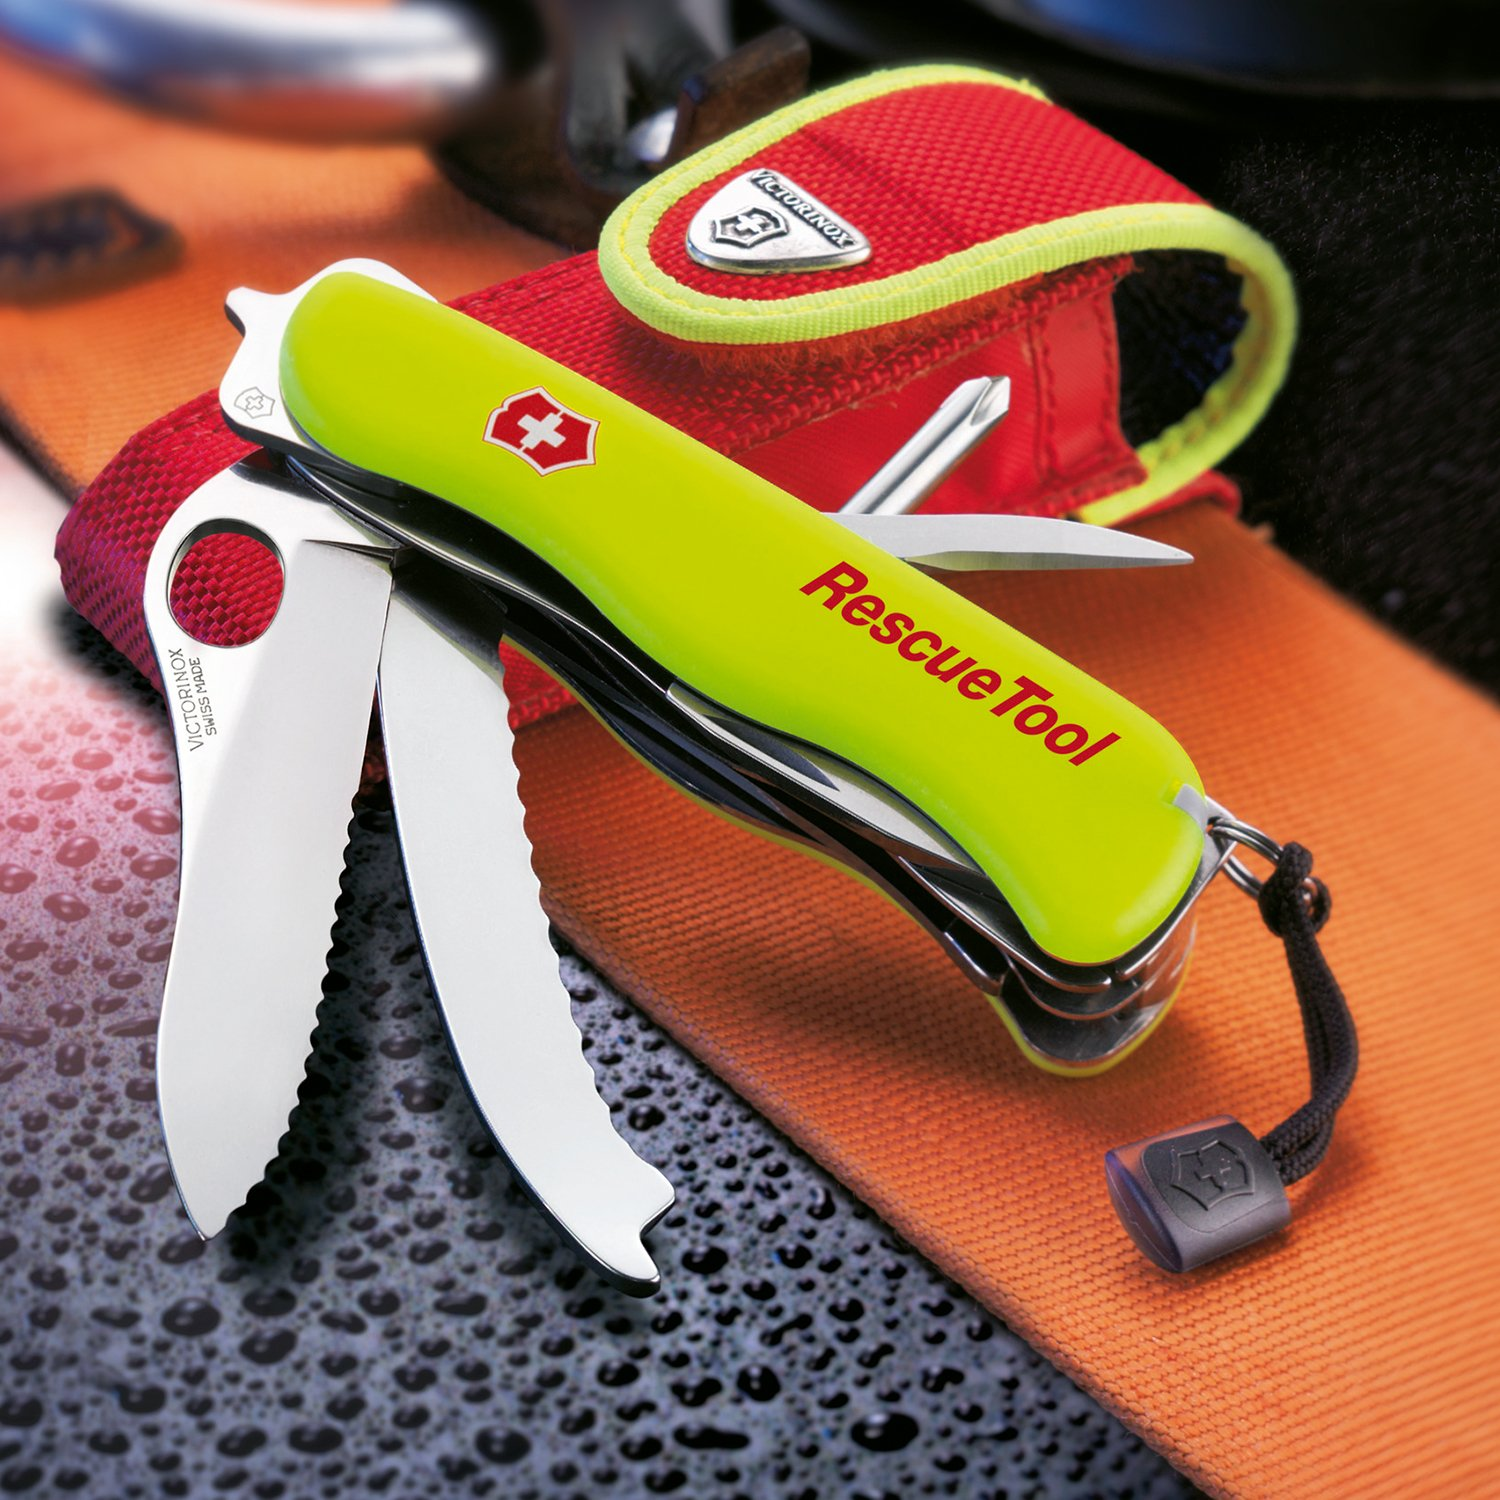 Victorinox Rescue Tool - Cuchillo (Acero Inoxidable): Amazon ...